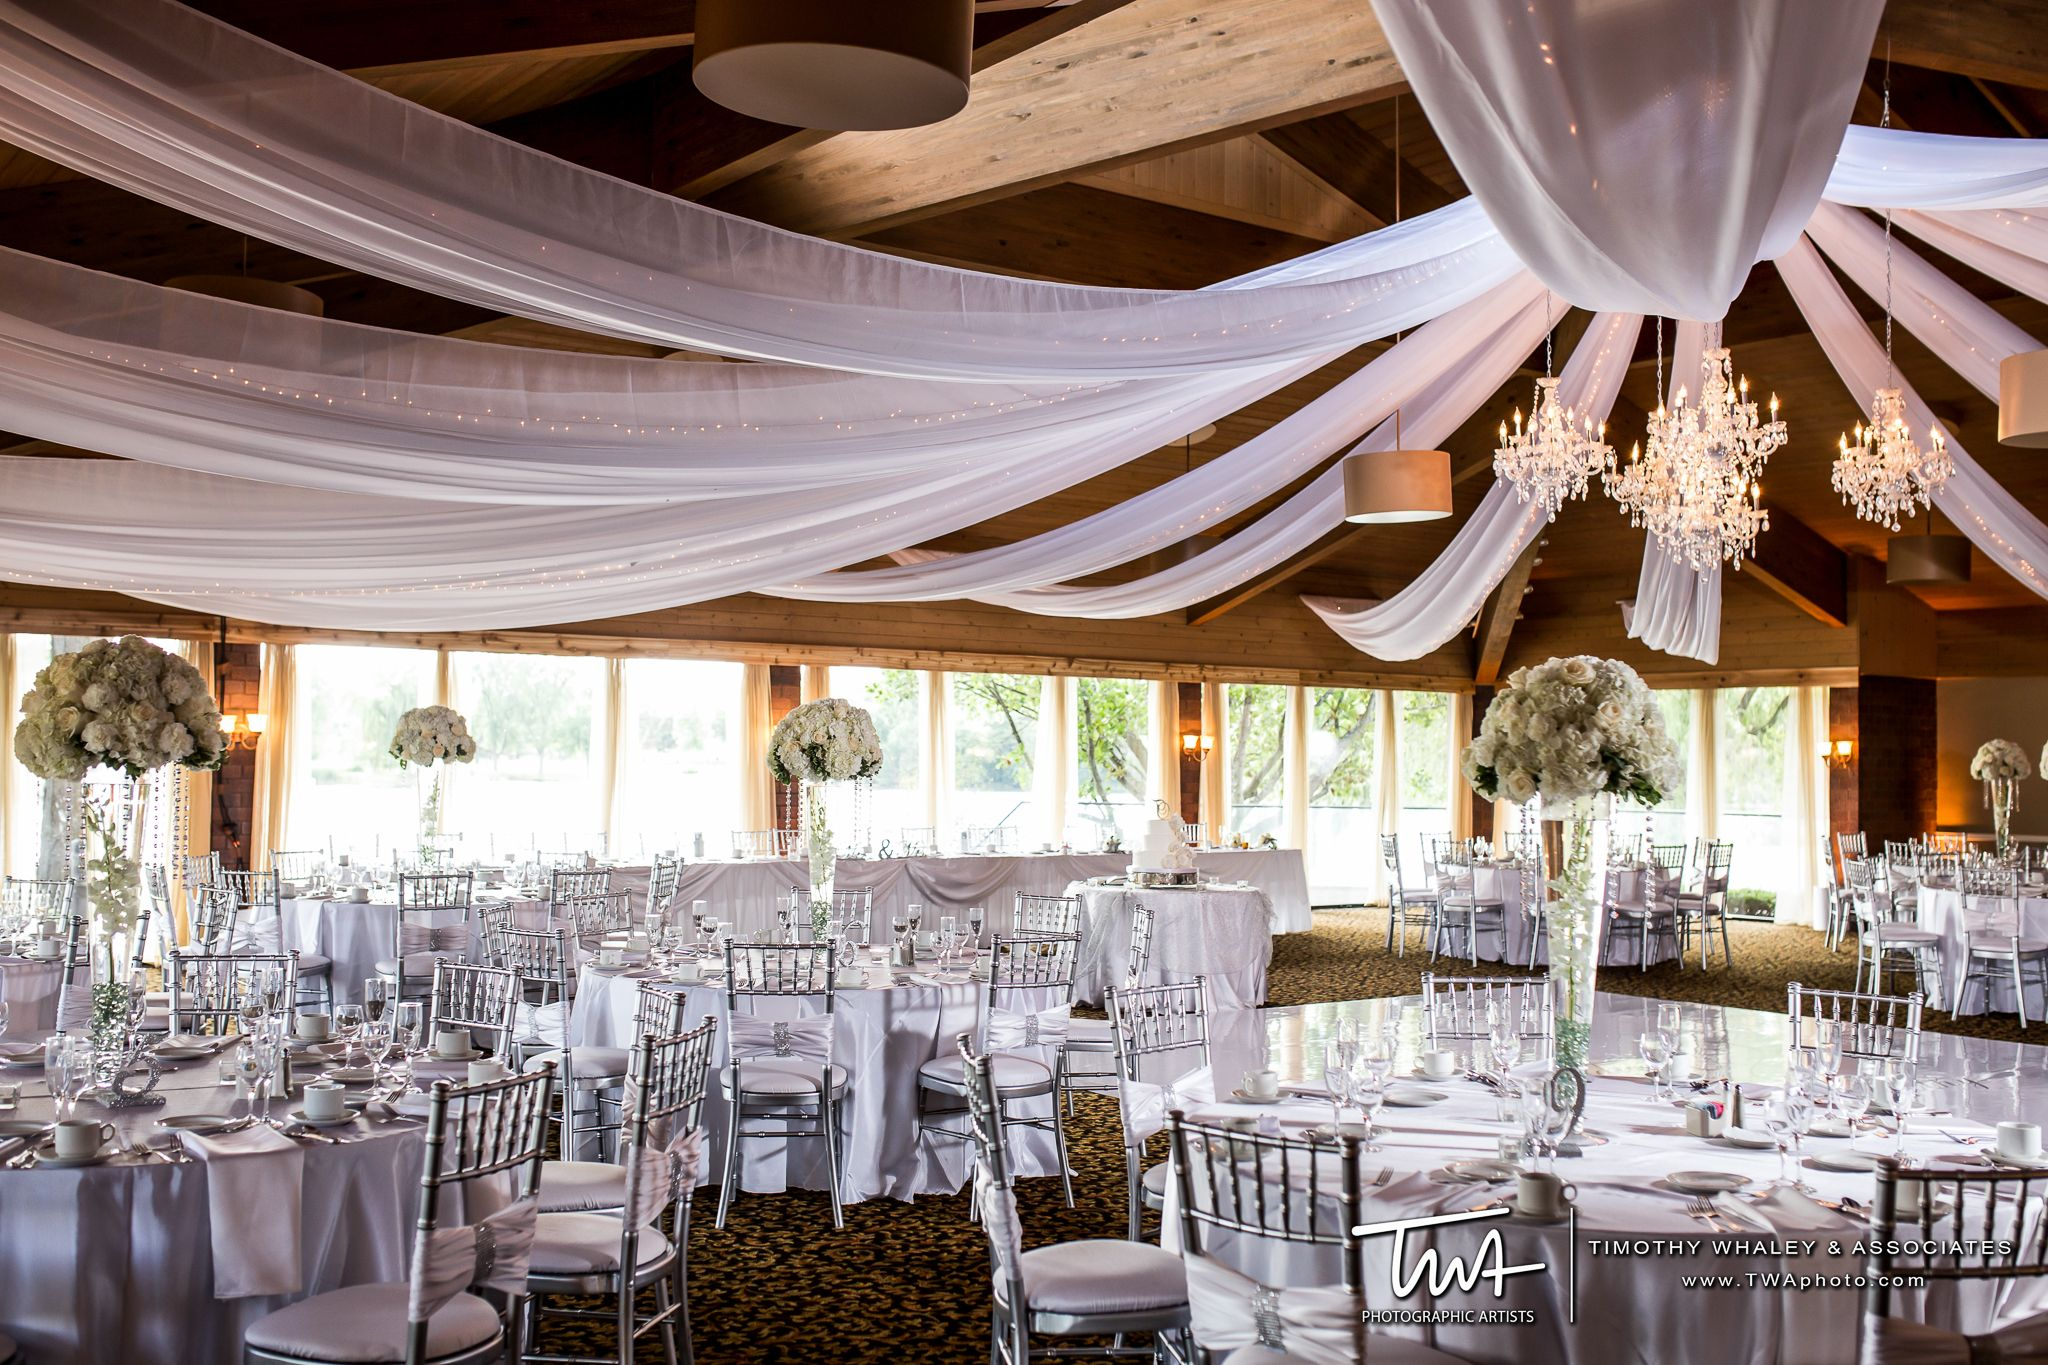 Twa Weddings At Kemper Lakes Golf Club Click The Picture To Enter Our Wedding Giveaway